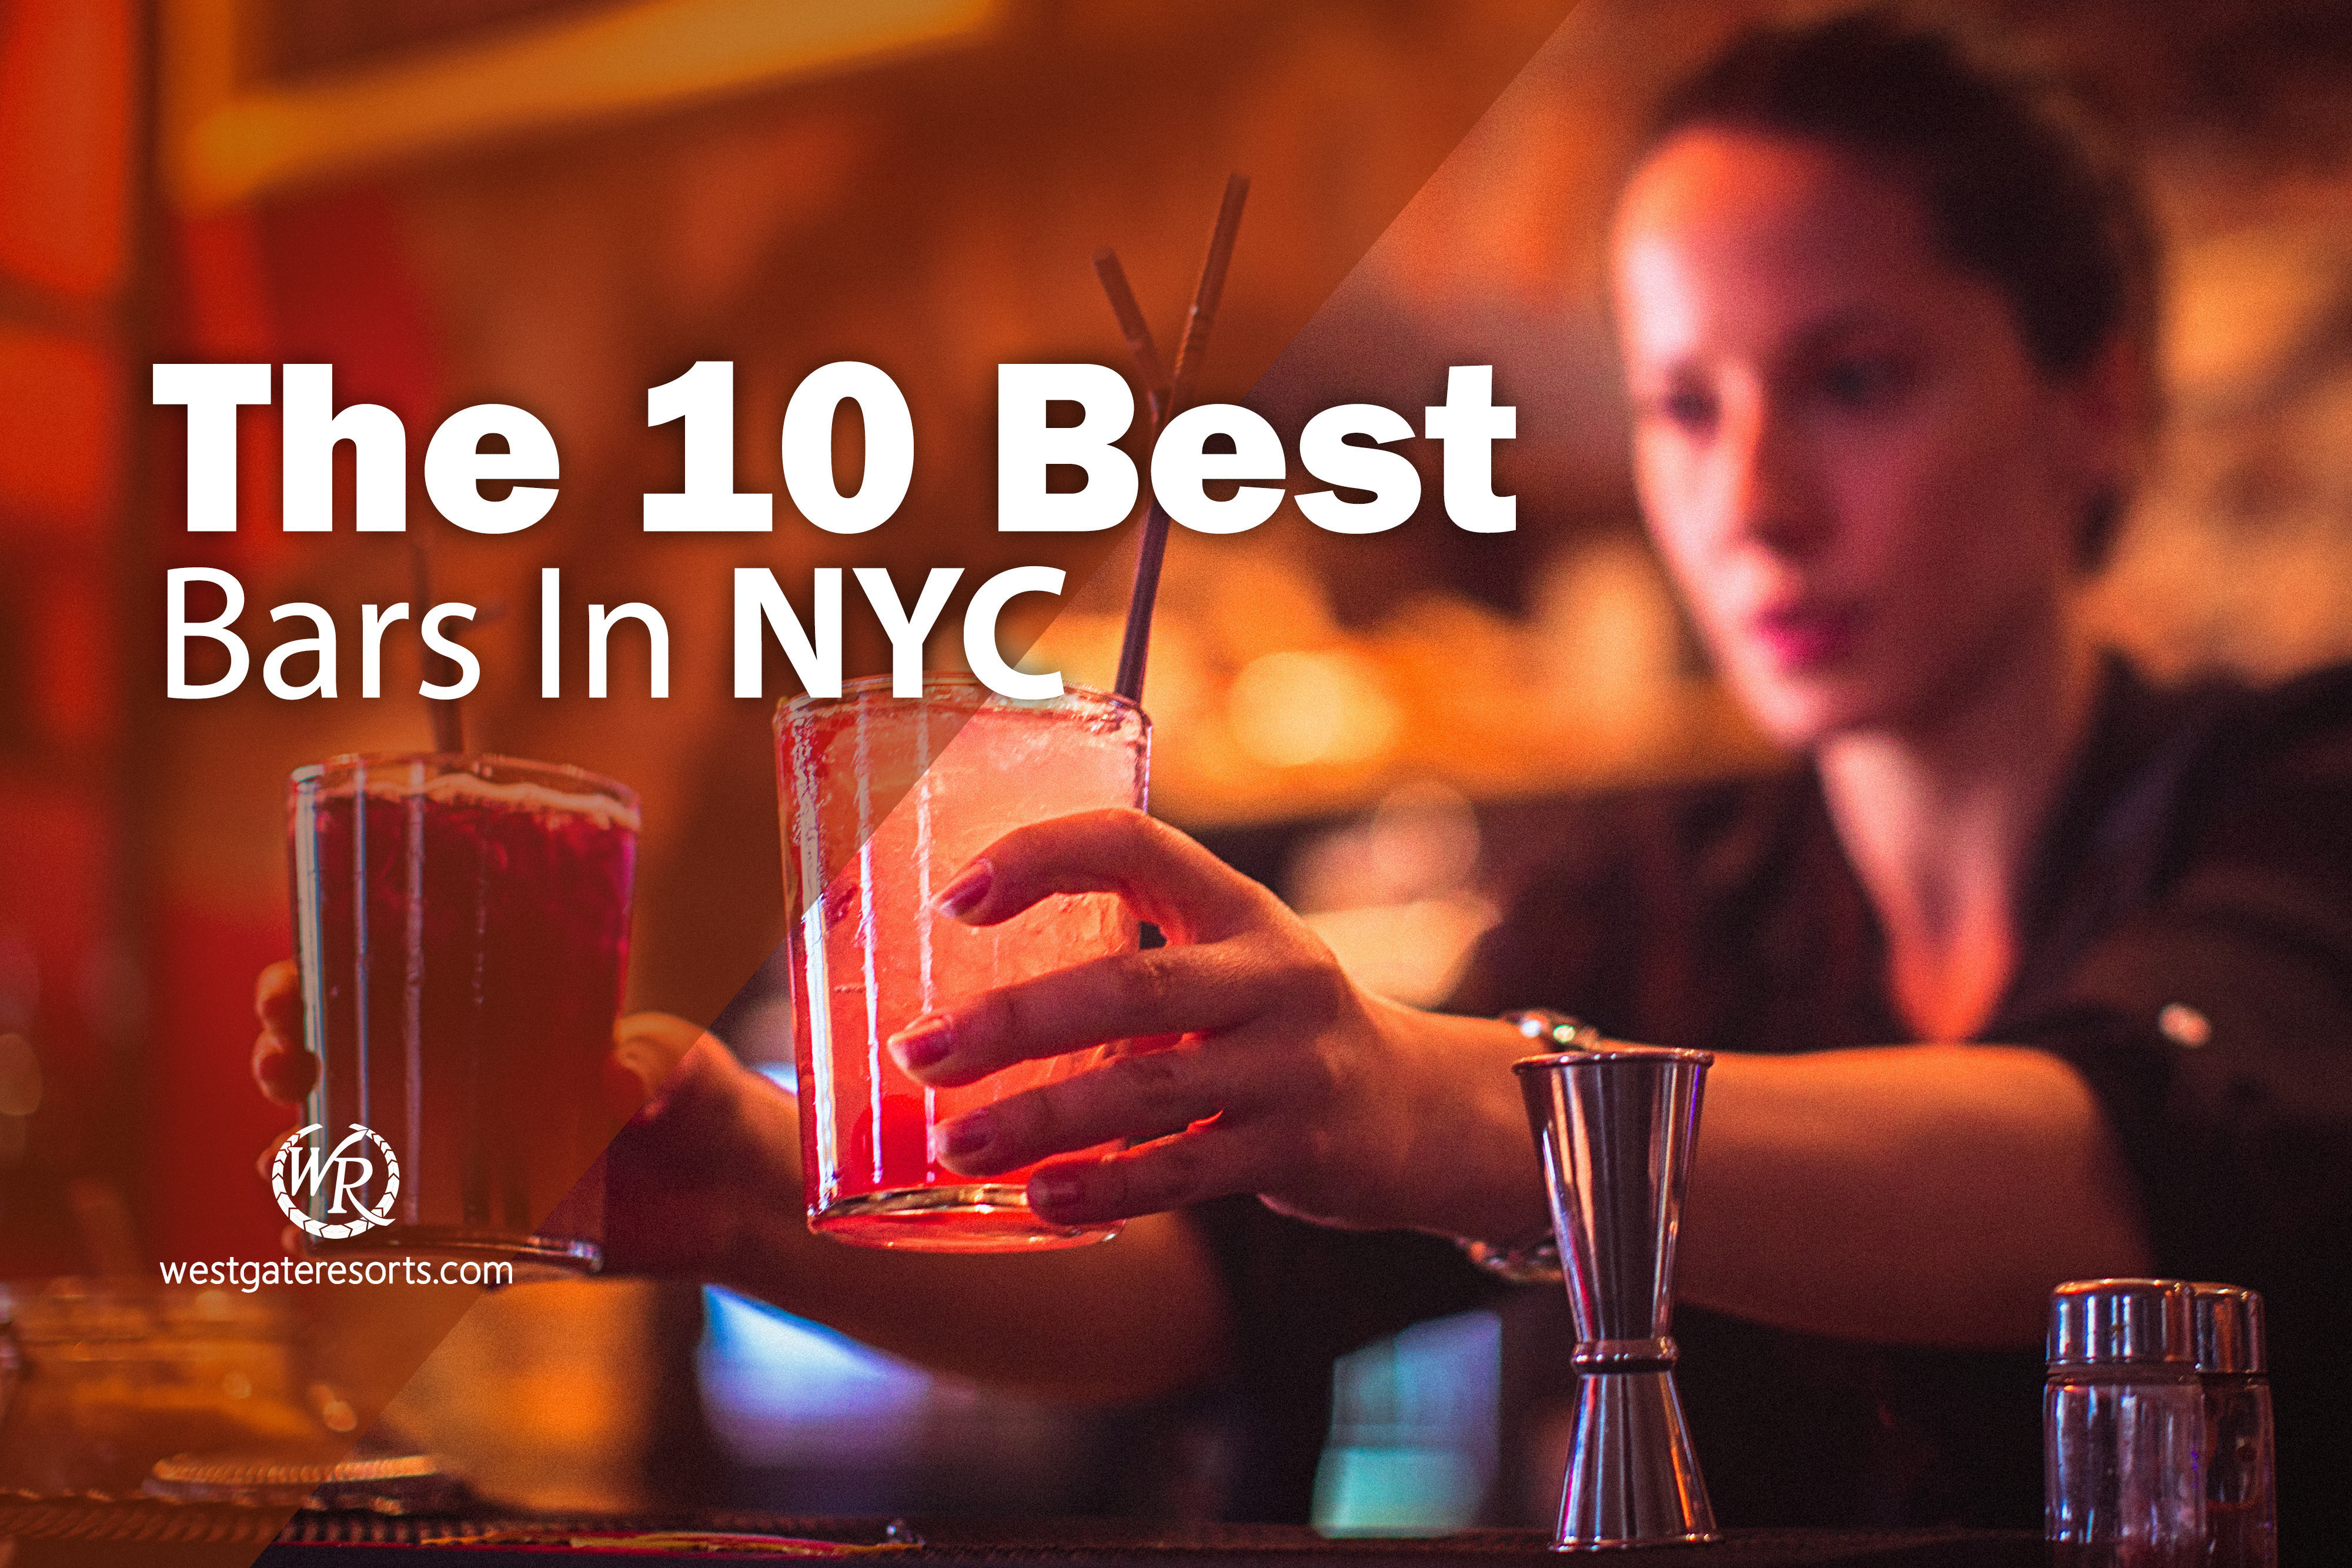 The 10 Best Bars in NYC